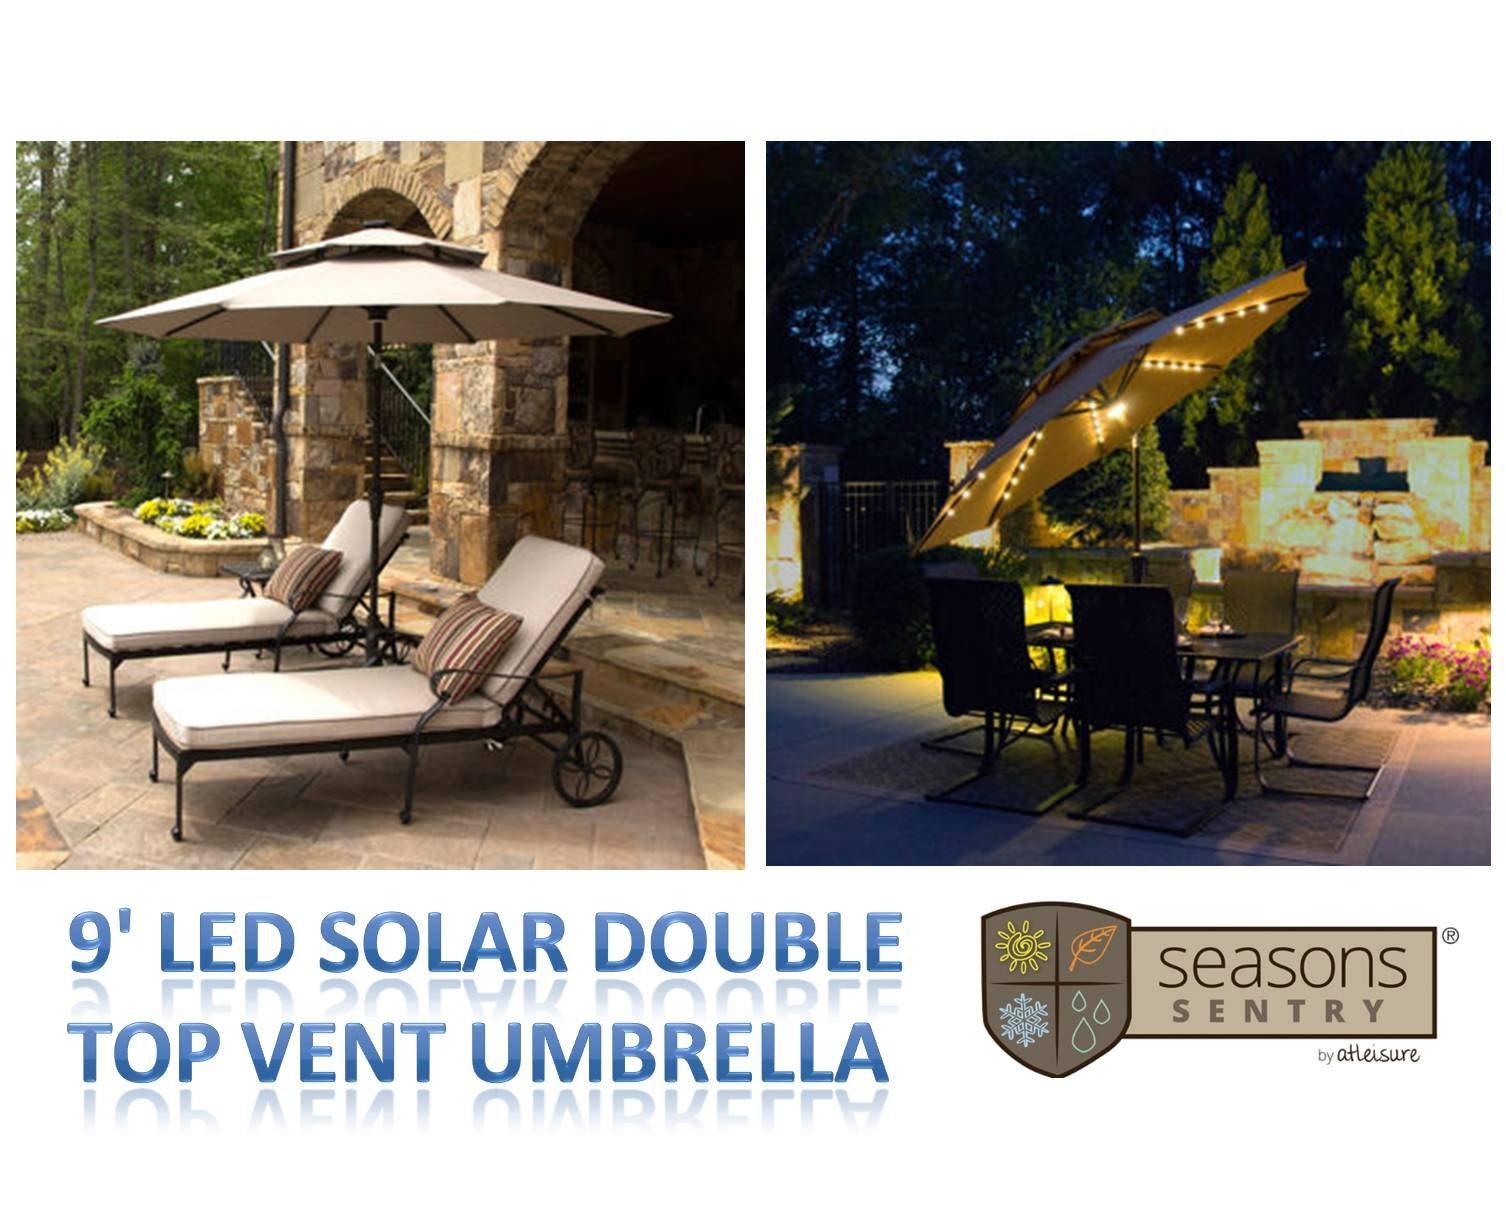 9' LED Solar Market Double-Top Vent Umbrella with 52 White LED Lights & Rechargeable Solar Panel ~ TAUPE by Sunbrella